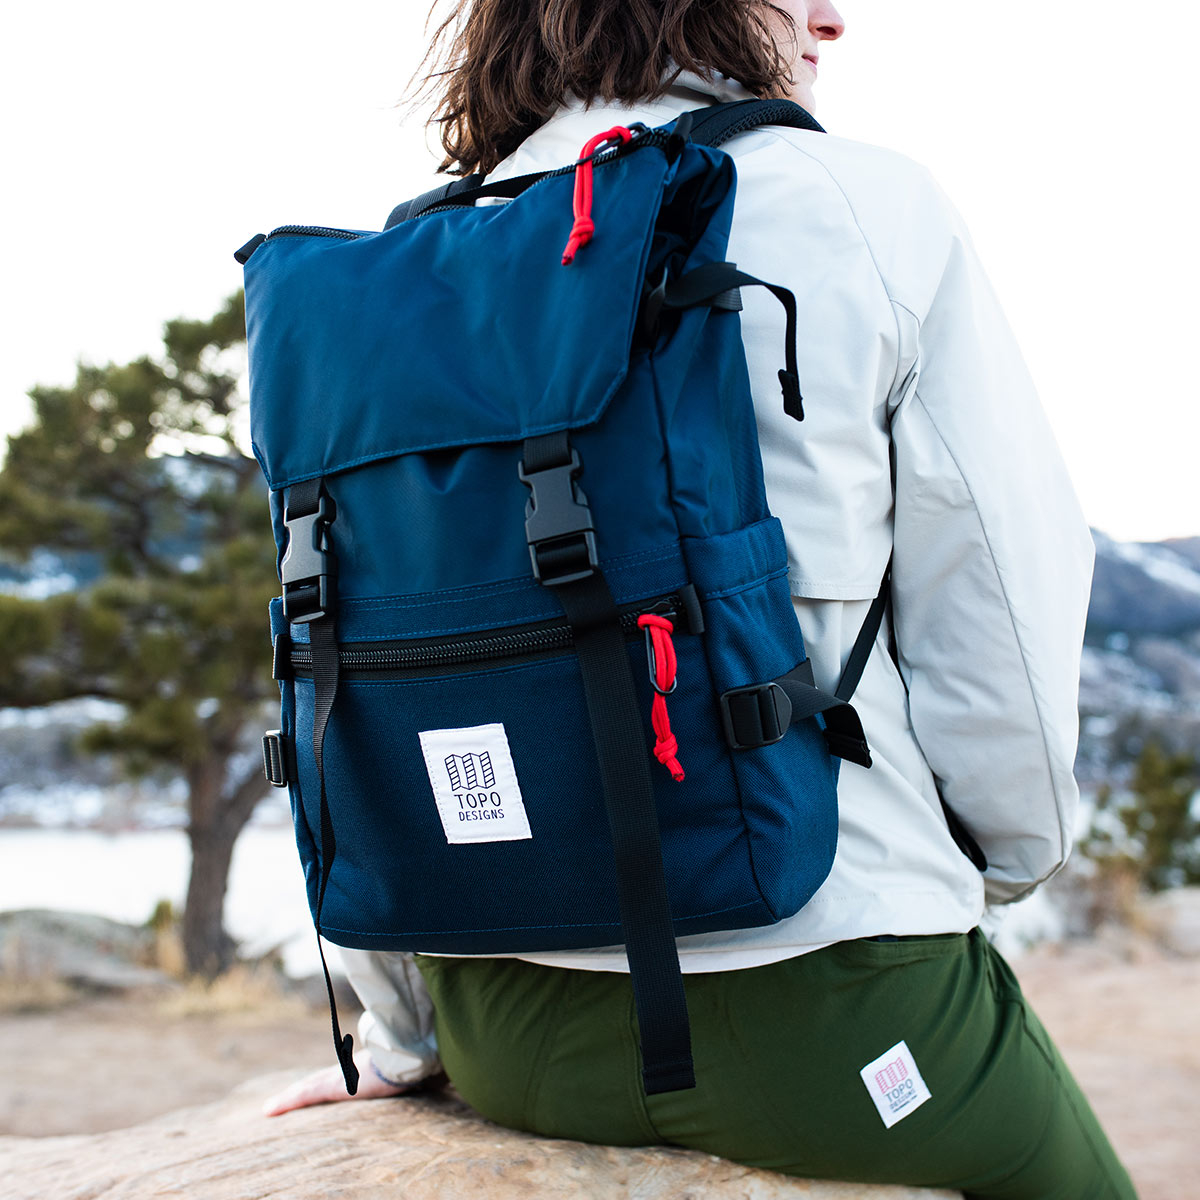 Topo Designs Rover Pack Classic Navy, durable, lightweight and water-resistant pack for daily use